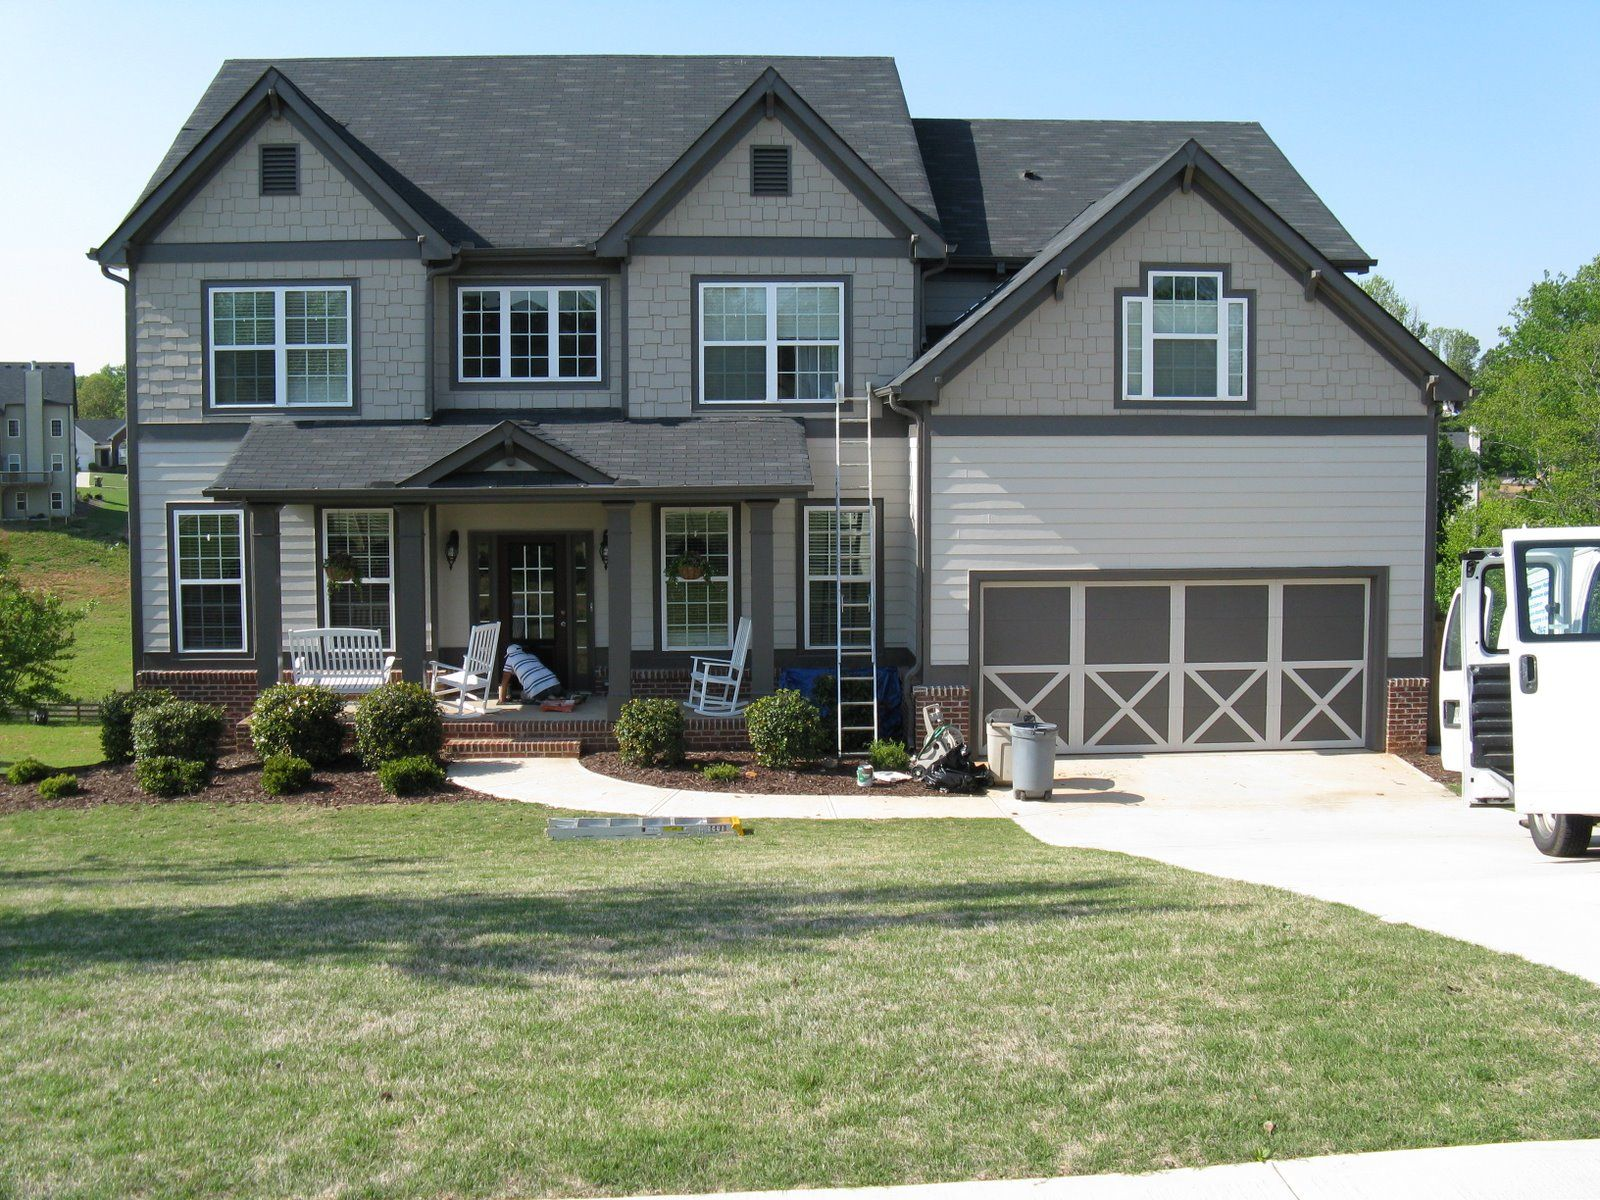 Modern exterior paint colors for houses grey trim white for Exterior contemporary house colors